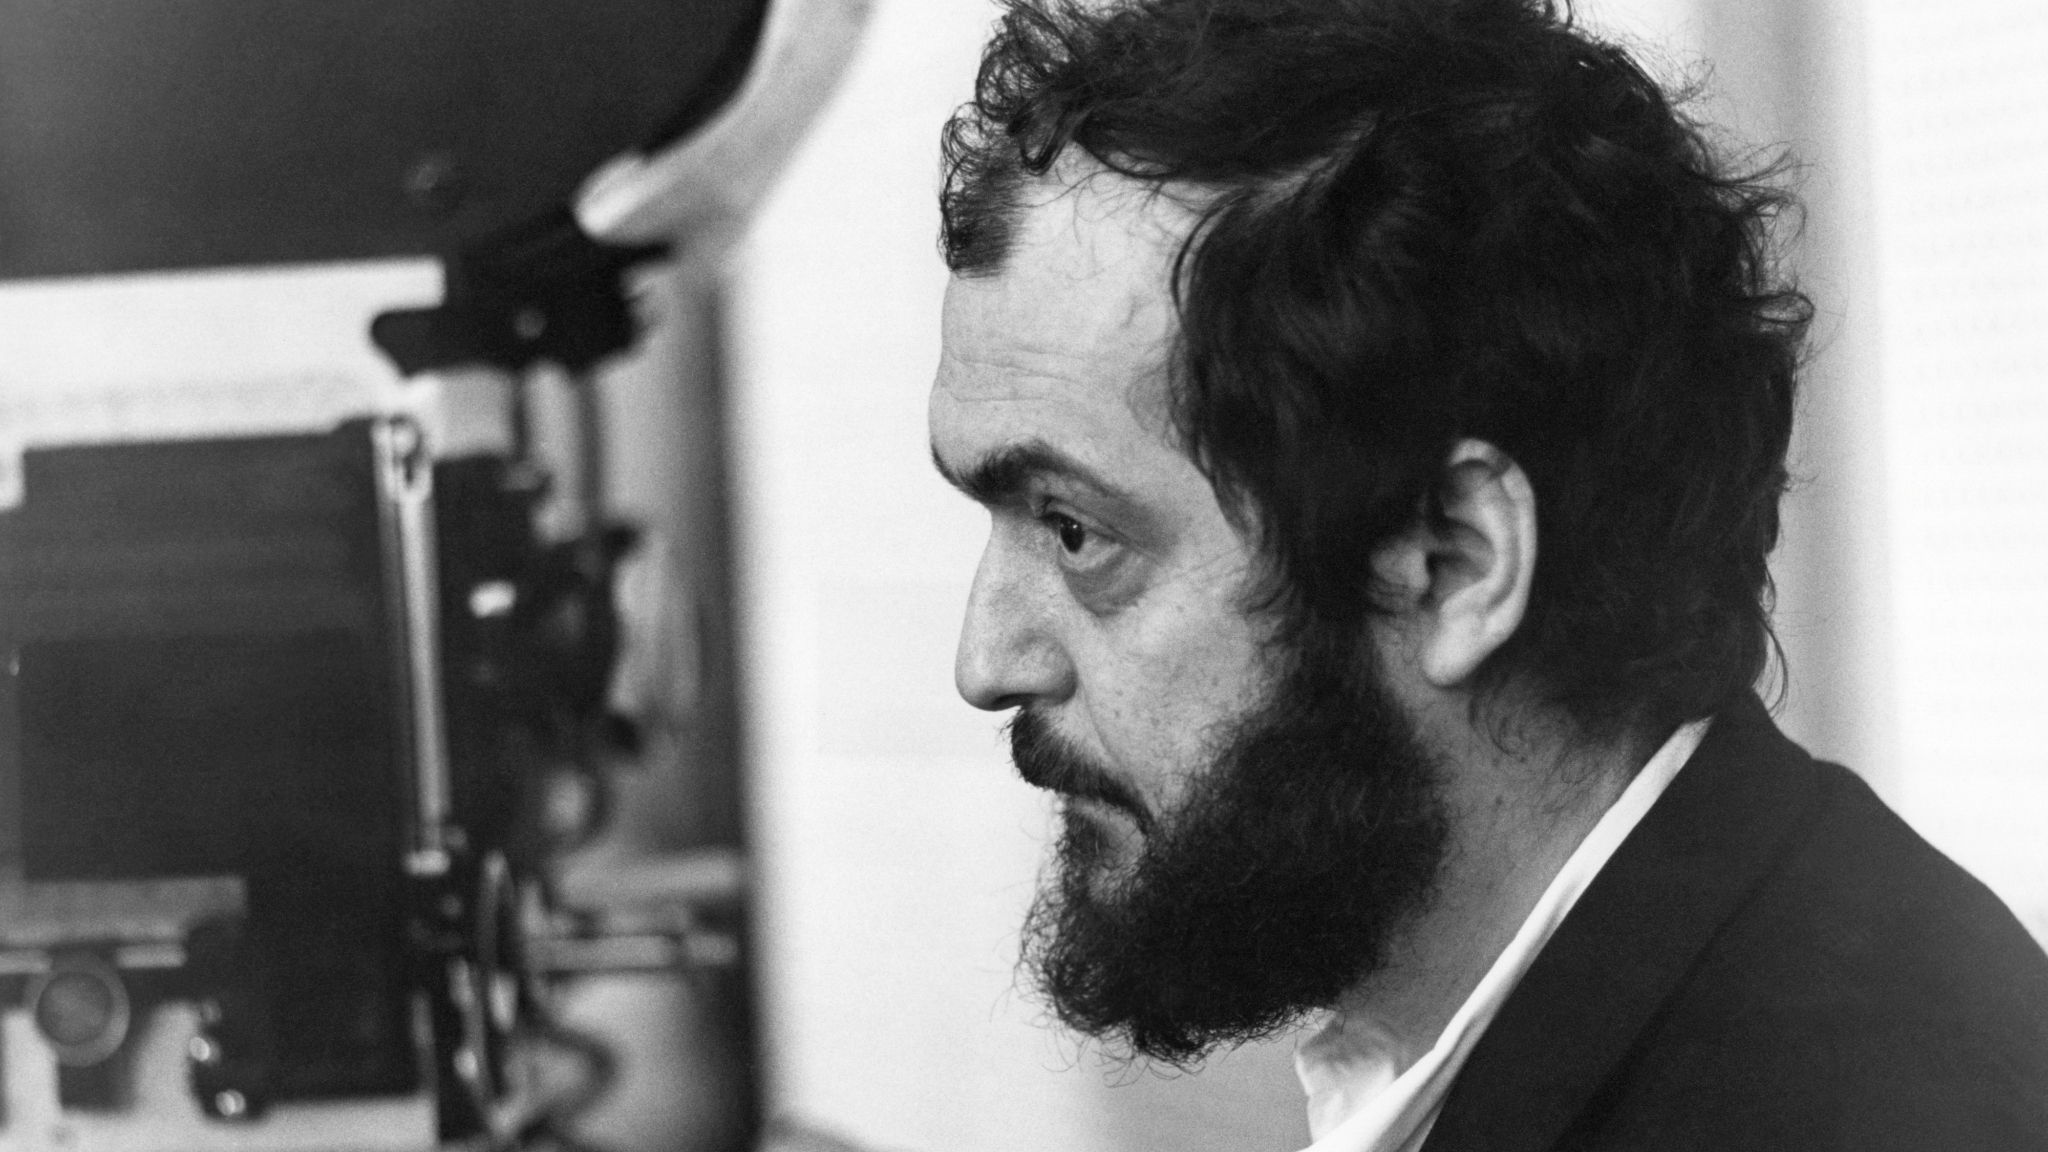 Lost Kubrick screenplay found 60 years on by Bangor professor